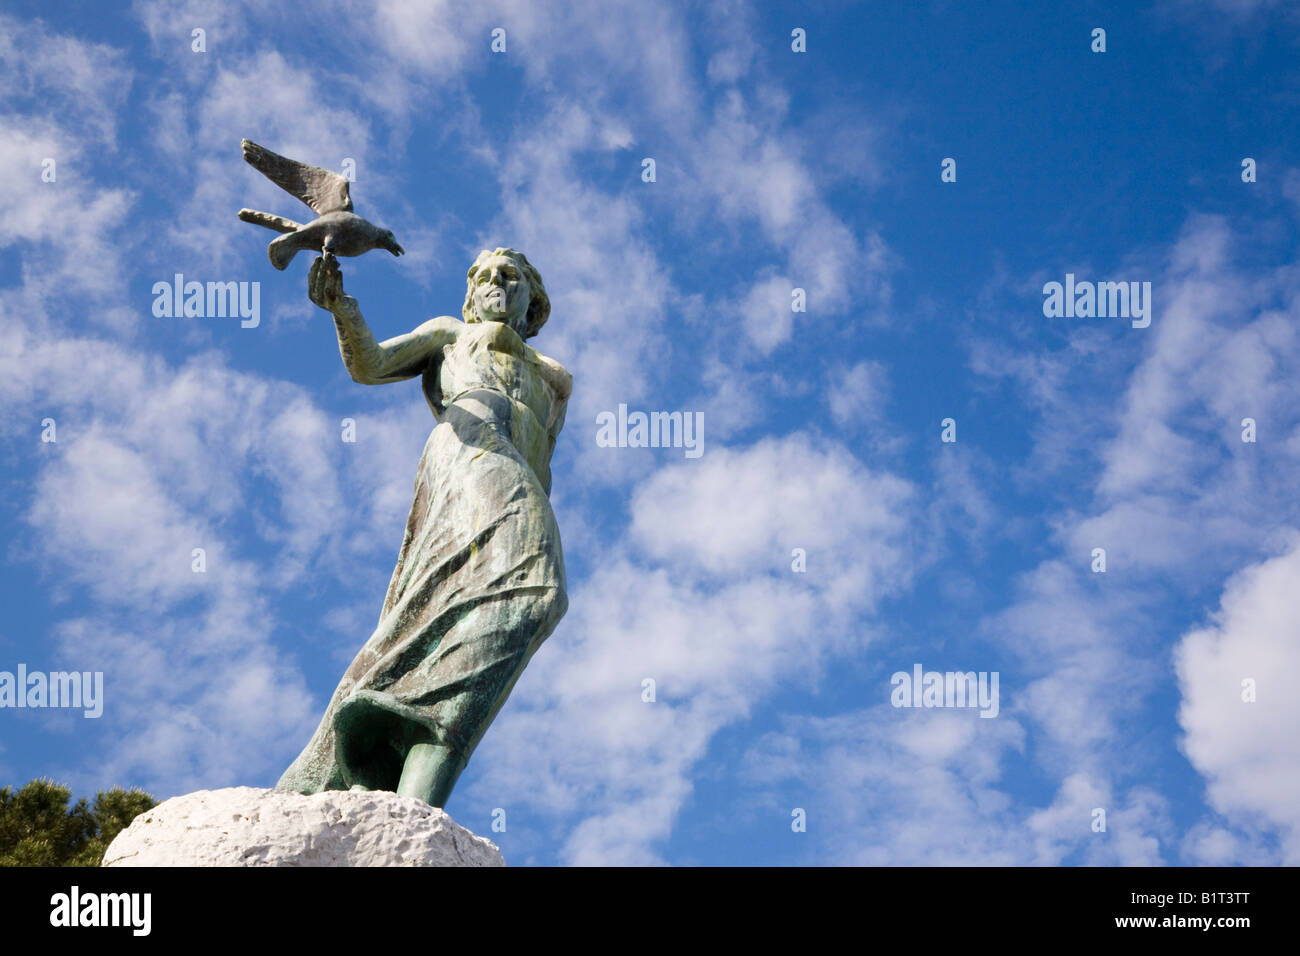 Opatija Istria Croatia Europe Maiden with the seagull statue on rock front view against blue sky - Stock Image